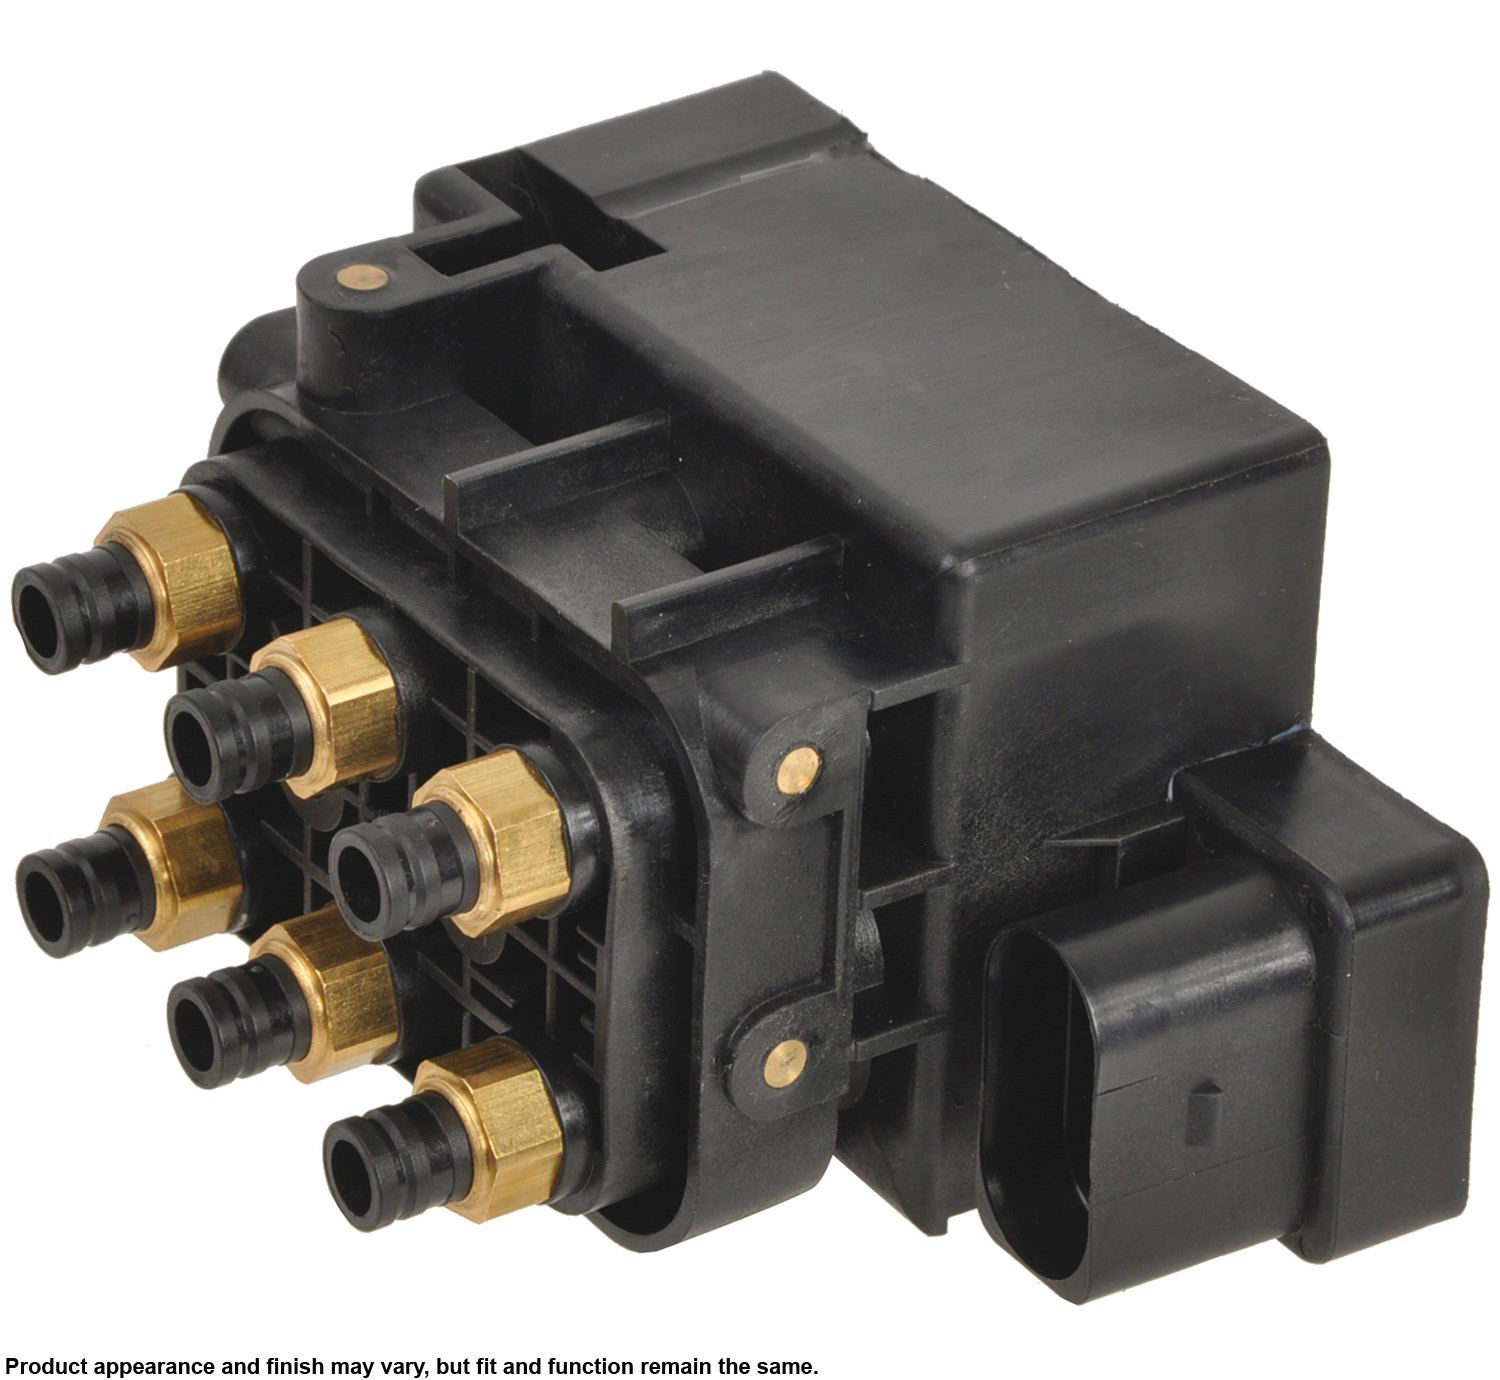 CARDONE REMAN - Air Suspension Valve Block - A1C 4J-8000V